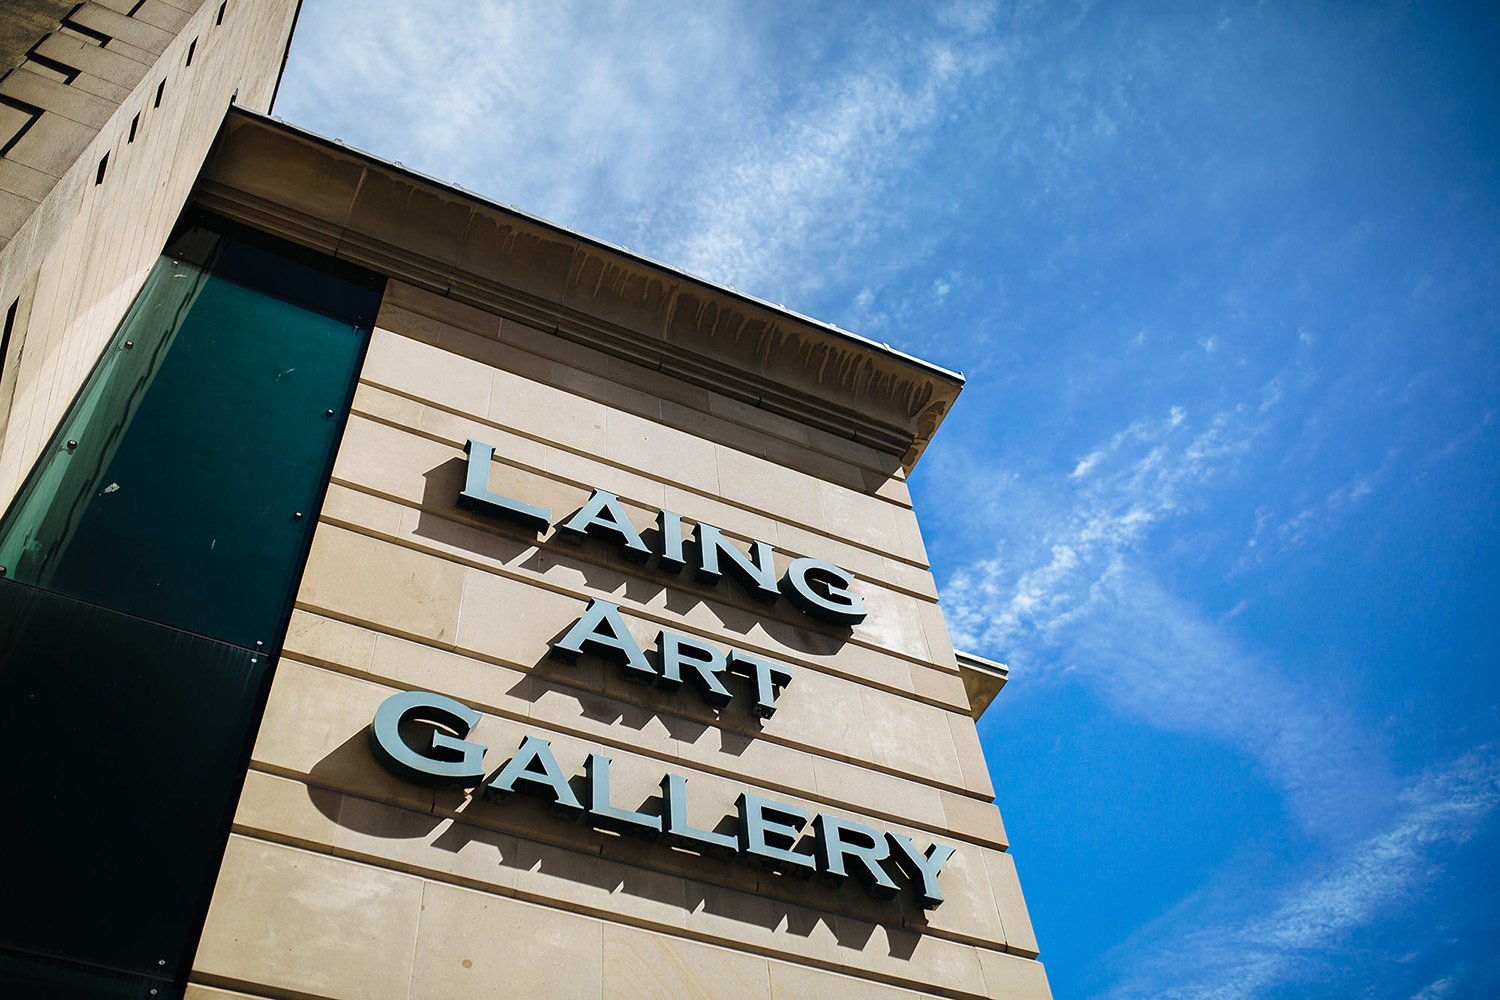 LAING ART GALLERY NEWCASTLE WEDDING PHOTOGRAPHY 53.JPG